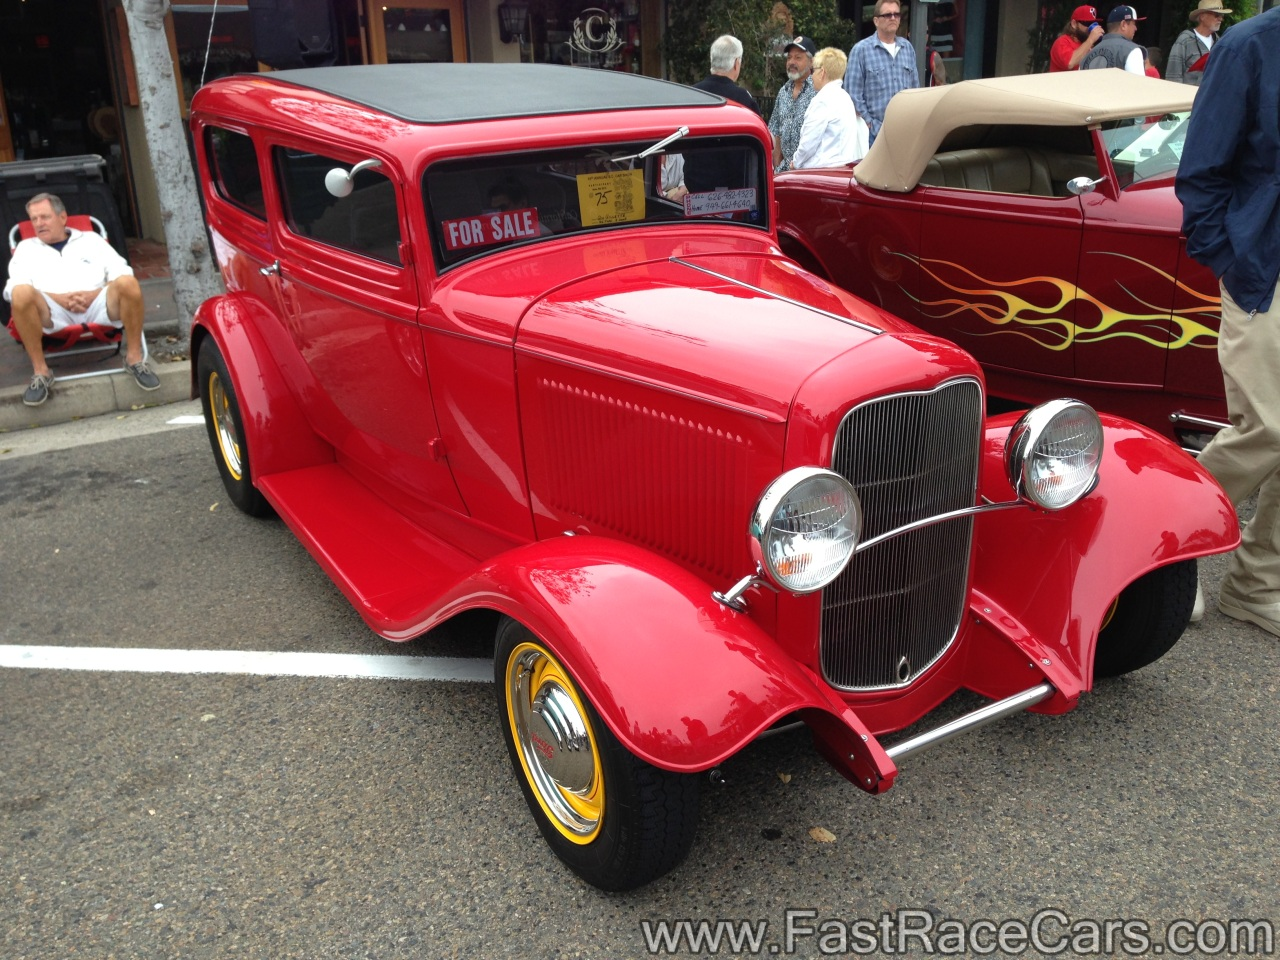 Muscle cars coupe picture of red 1932 ford 2 door sedan for 1932 ford 2 door coupe